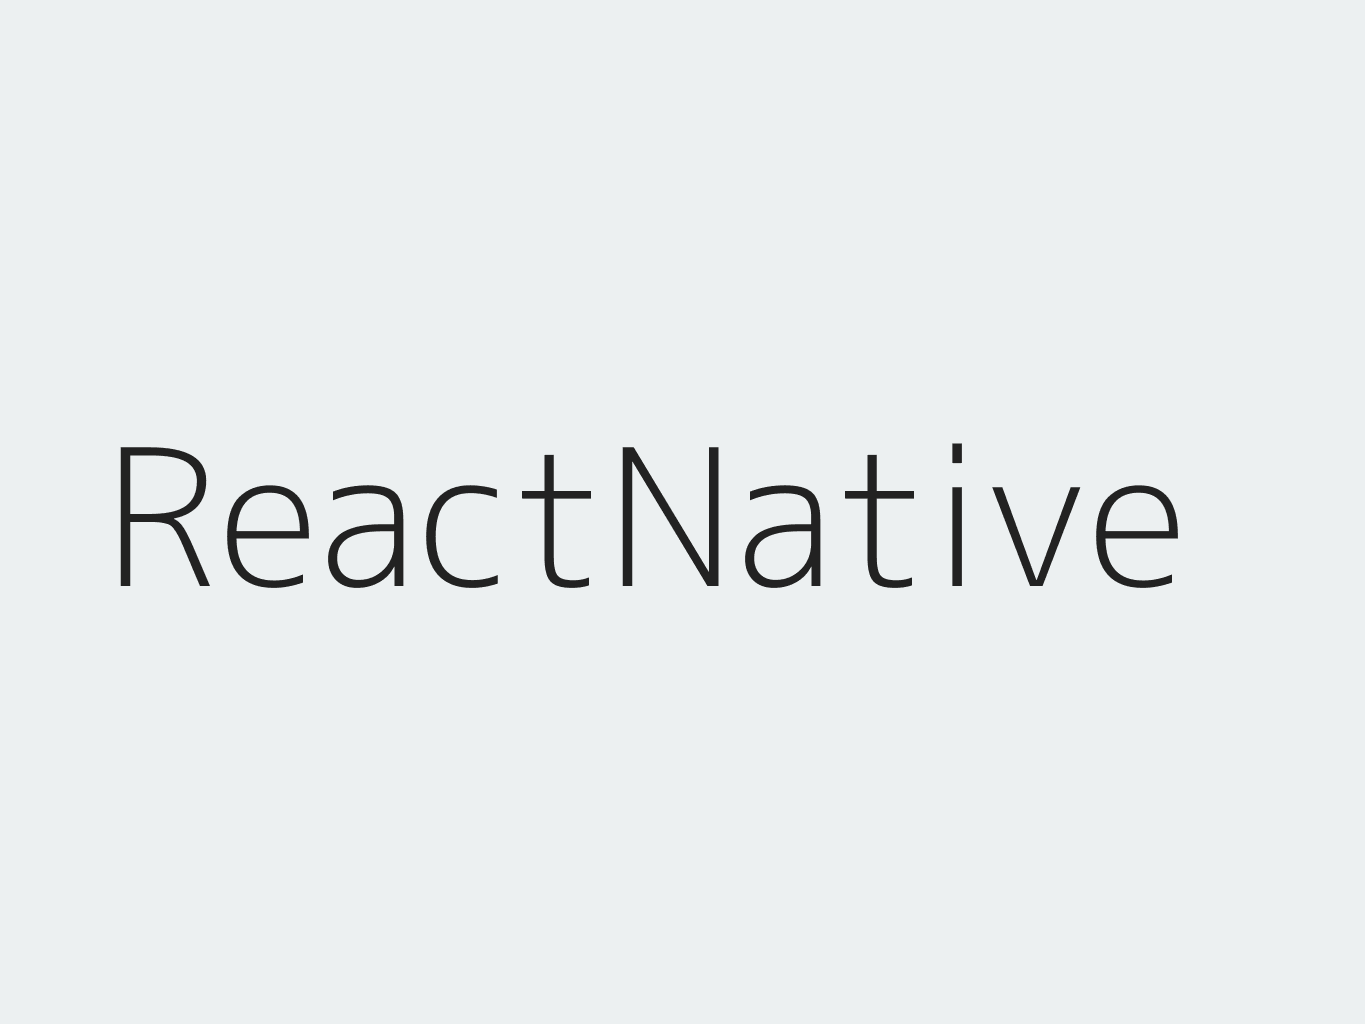 Hacker News App with React Native